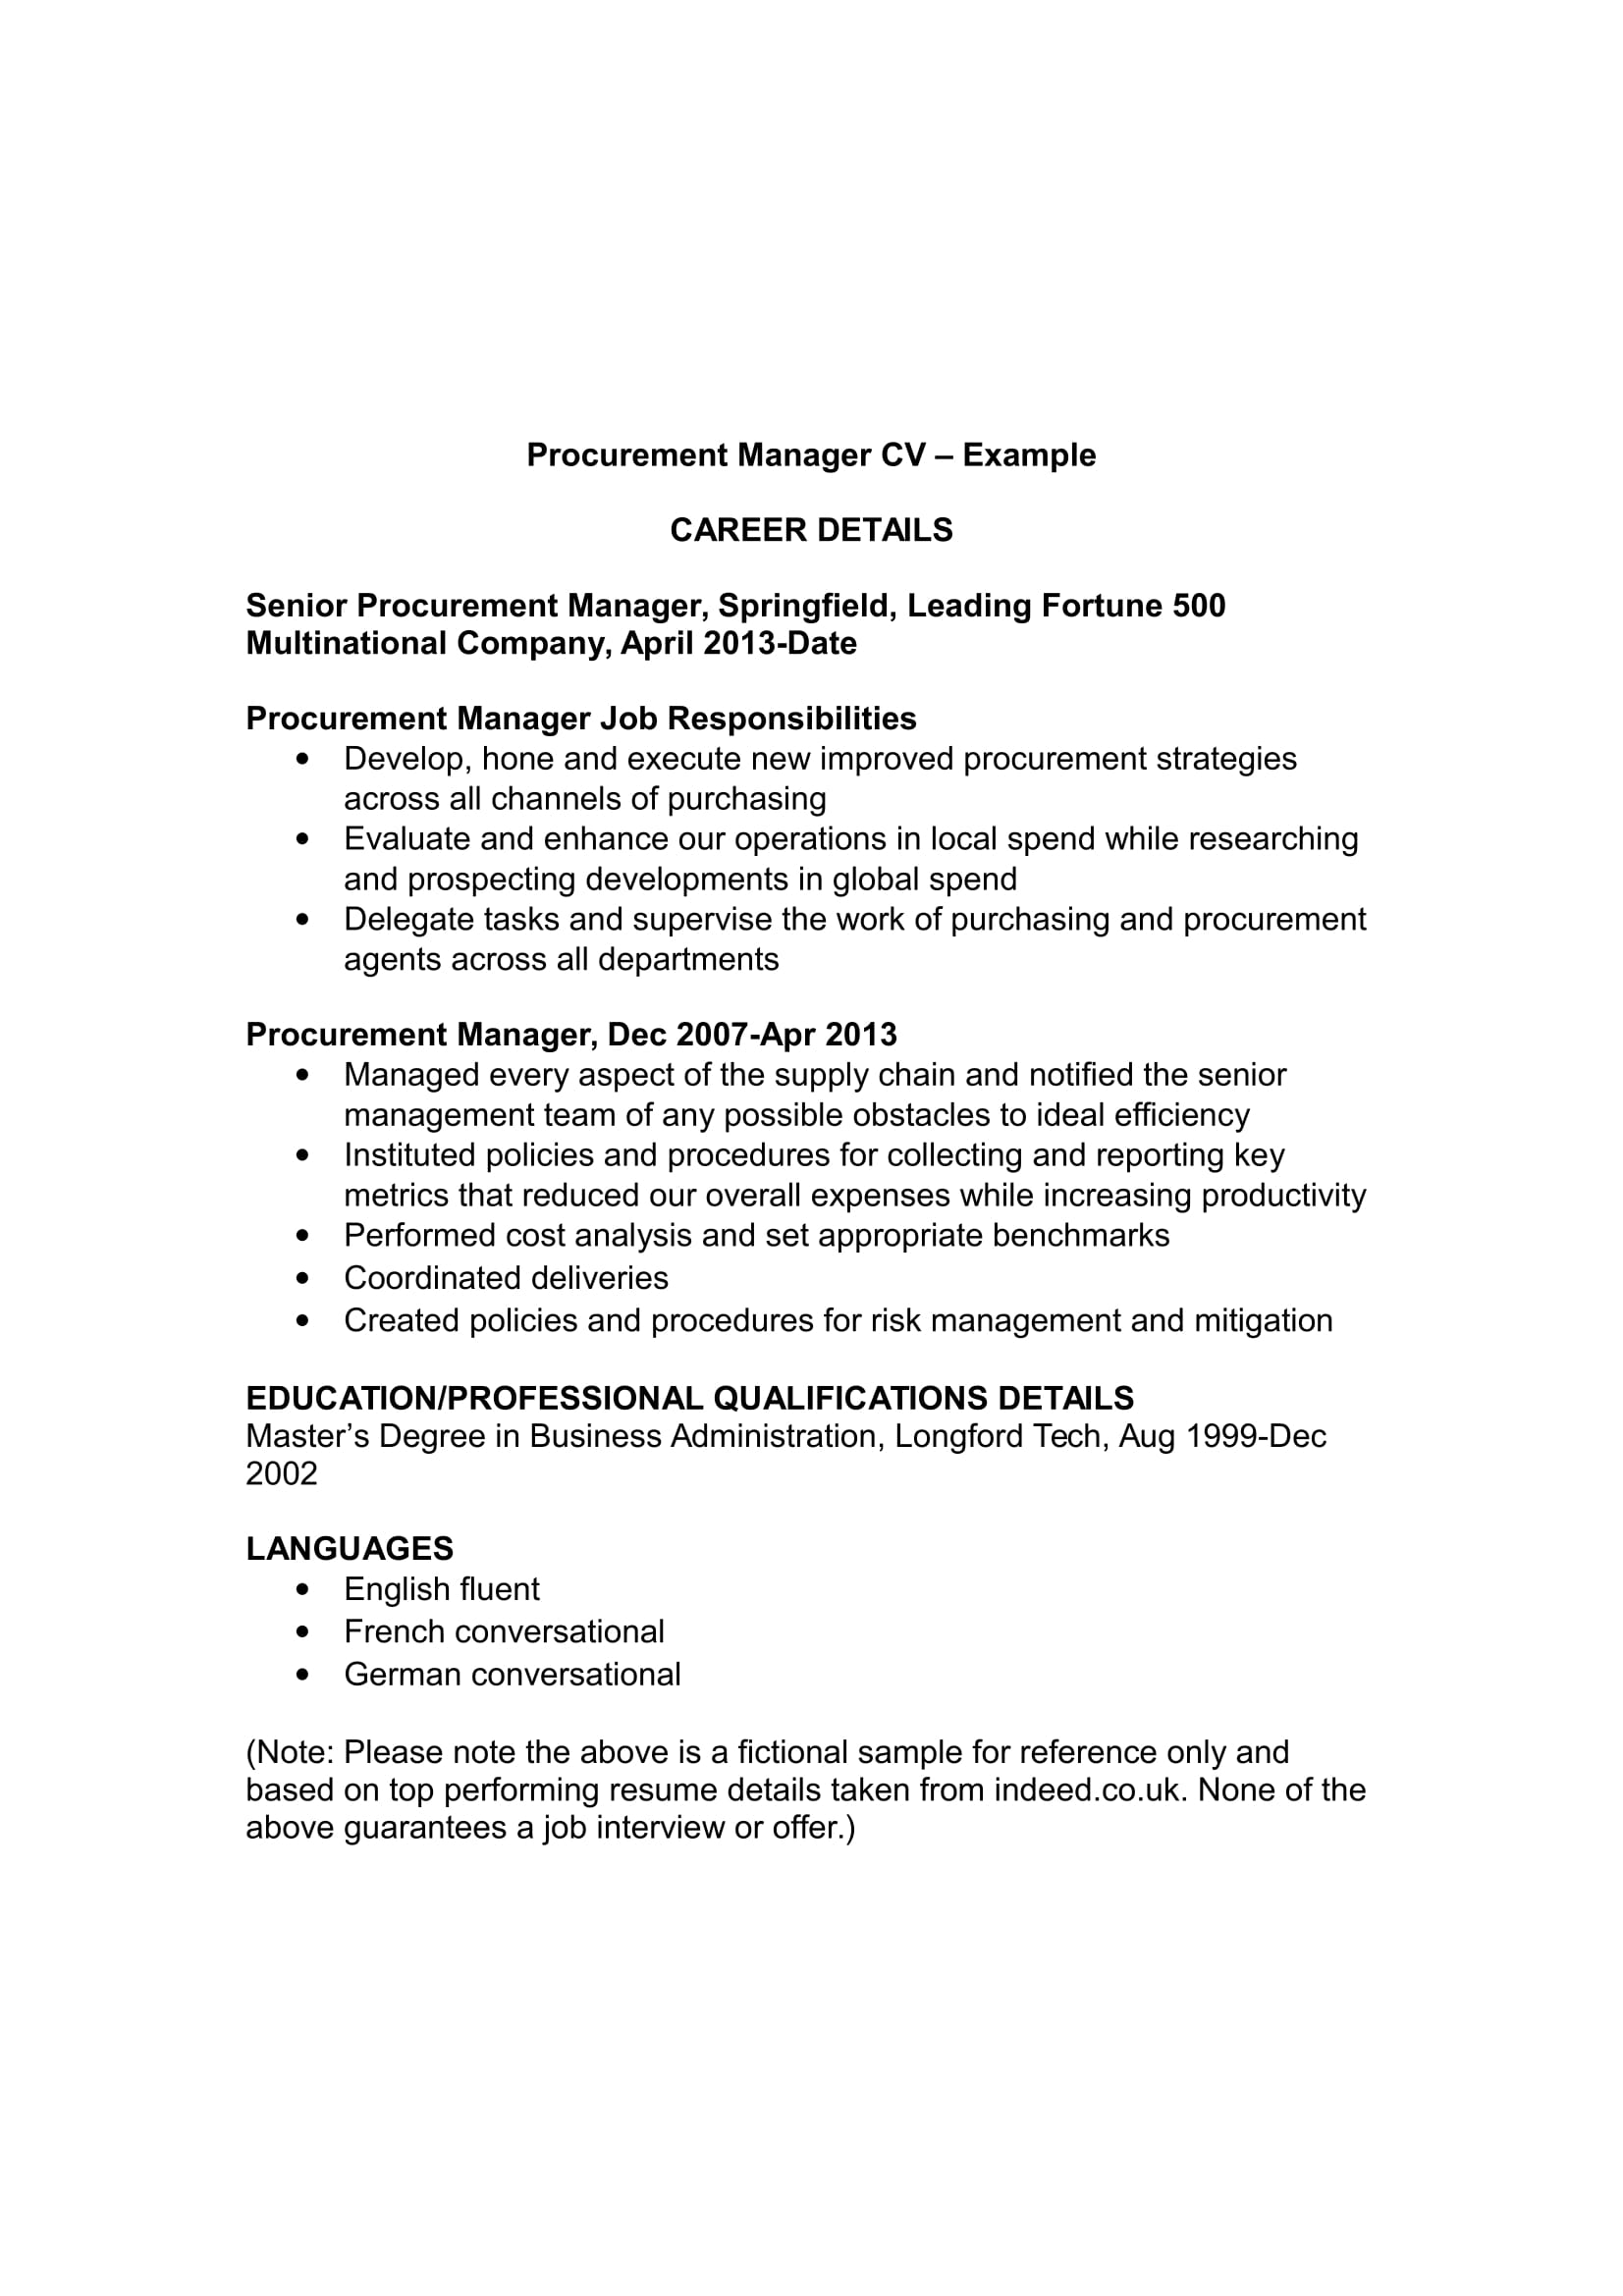 purchase cv template and fees keywords for procurement resume manager example examples Resume Keywords For Procurement Resume